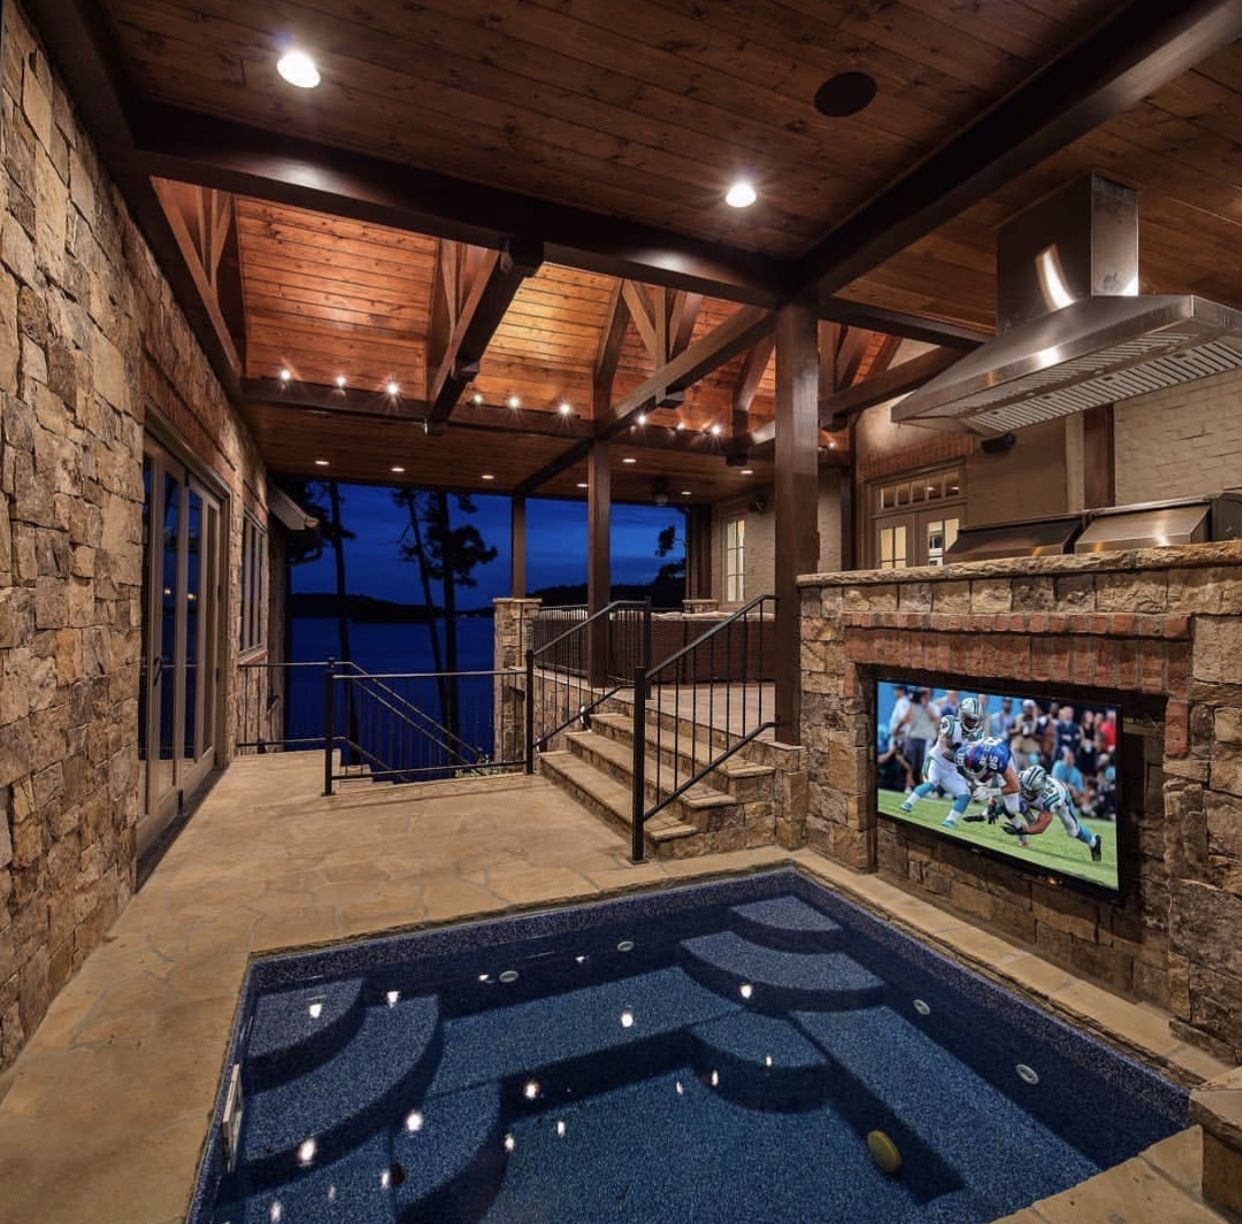 Great Outdoor Hot Tub Tv Set Up Hillcrestluxuryhomes Hot Tub Outdoor Hot Tub House Indoor Hot Tub